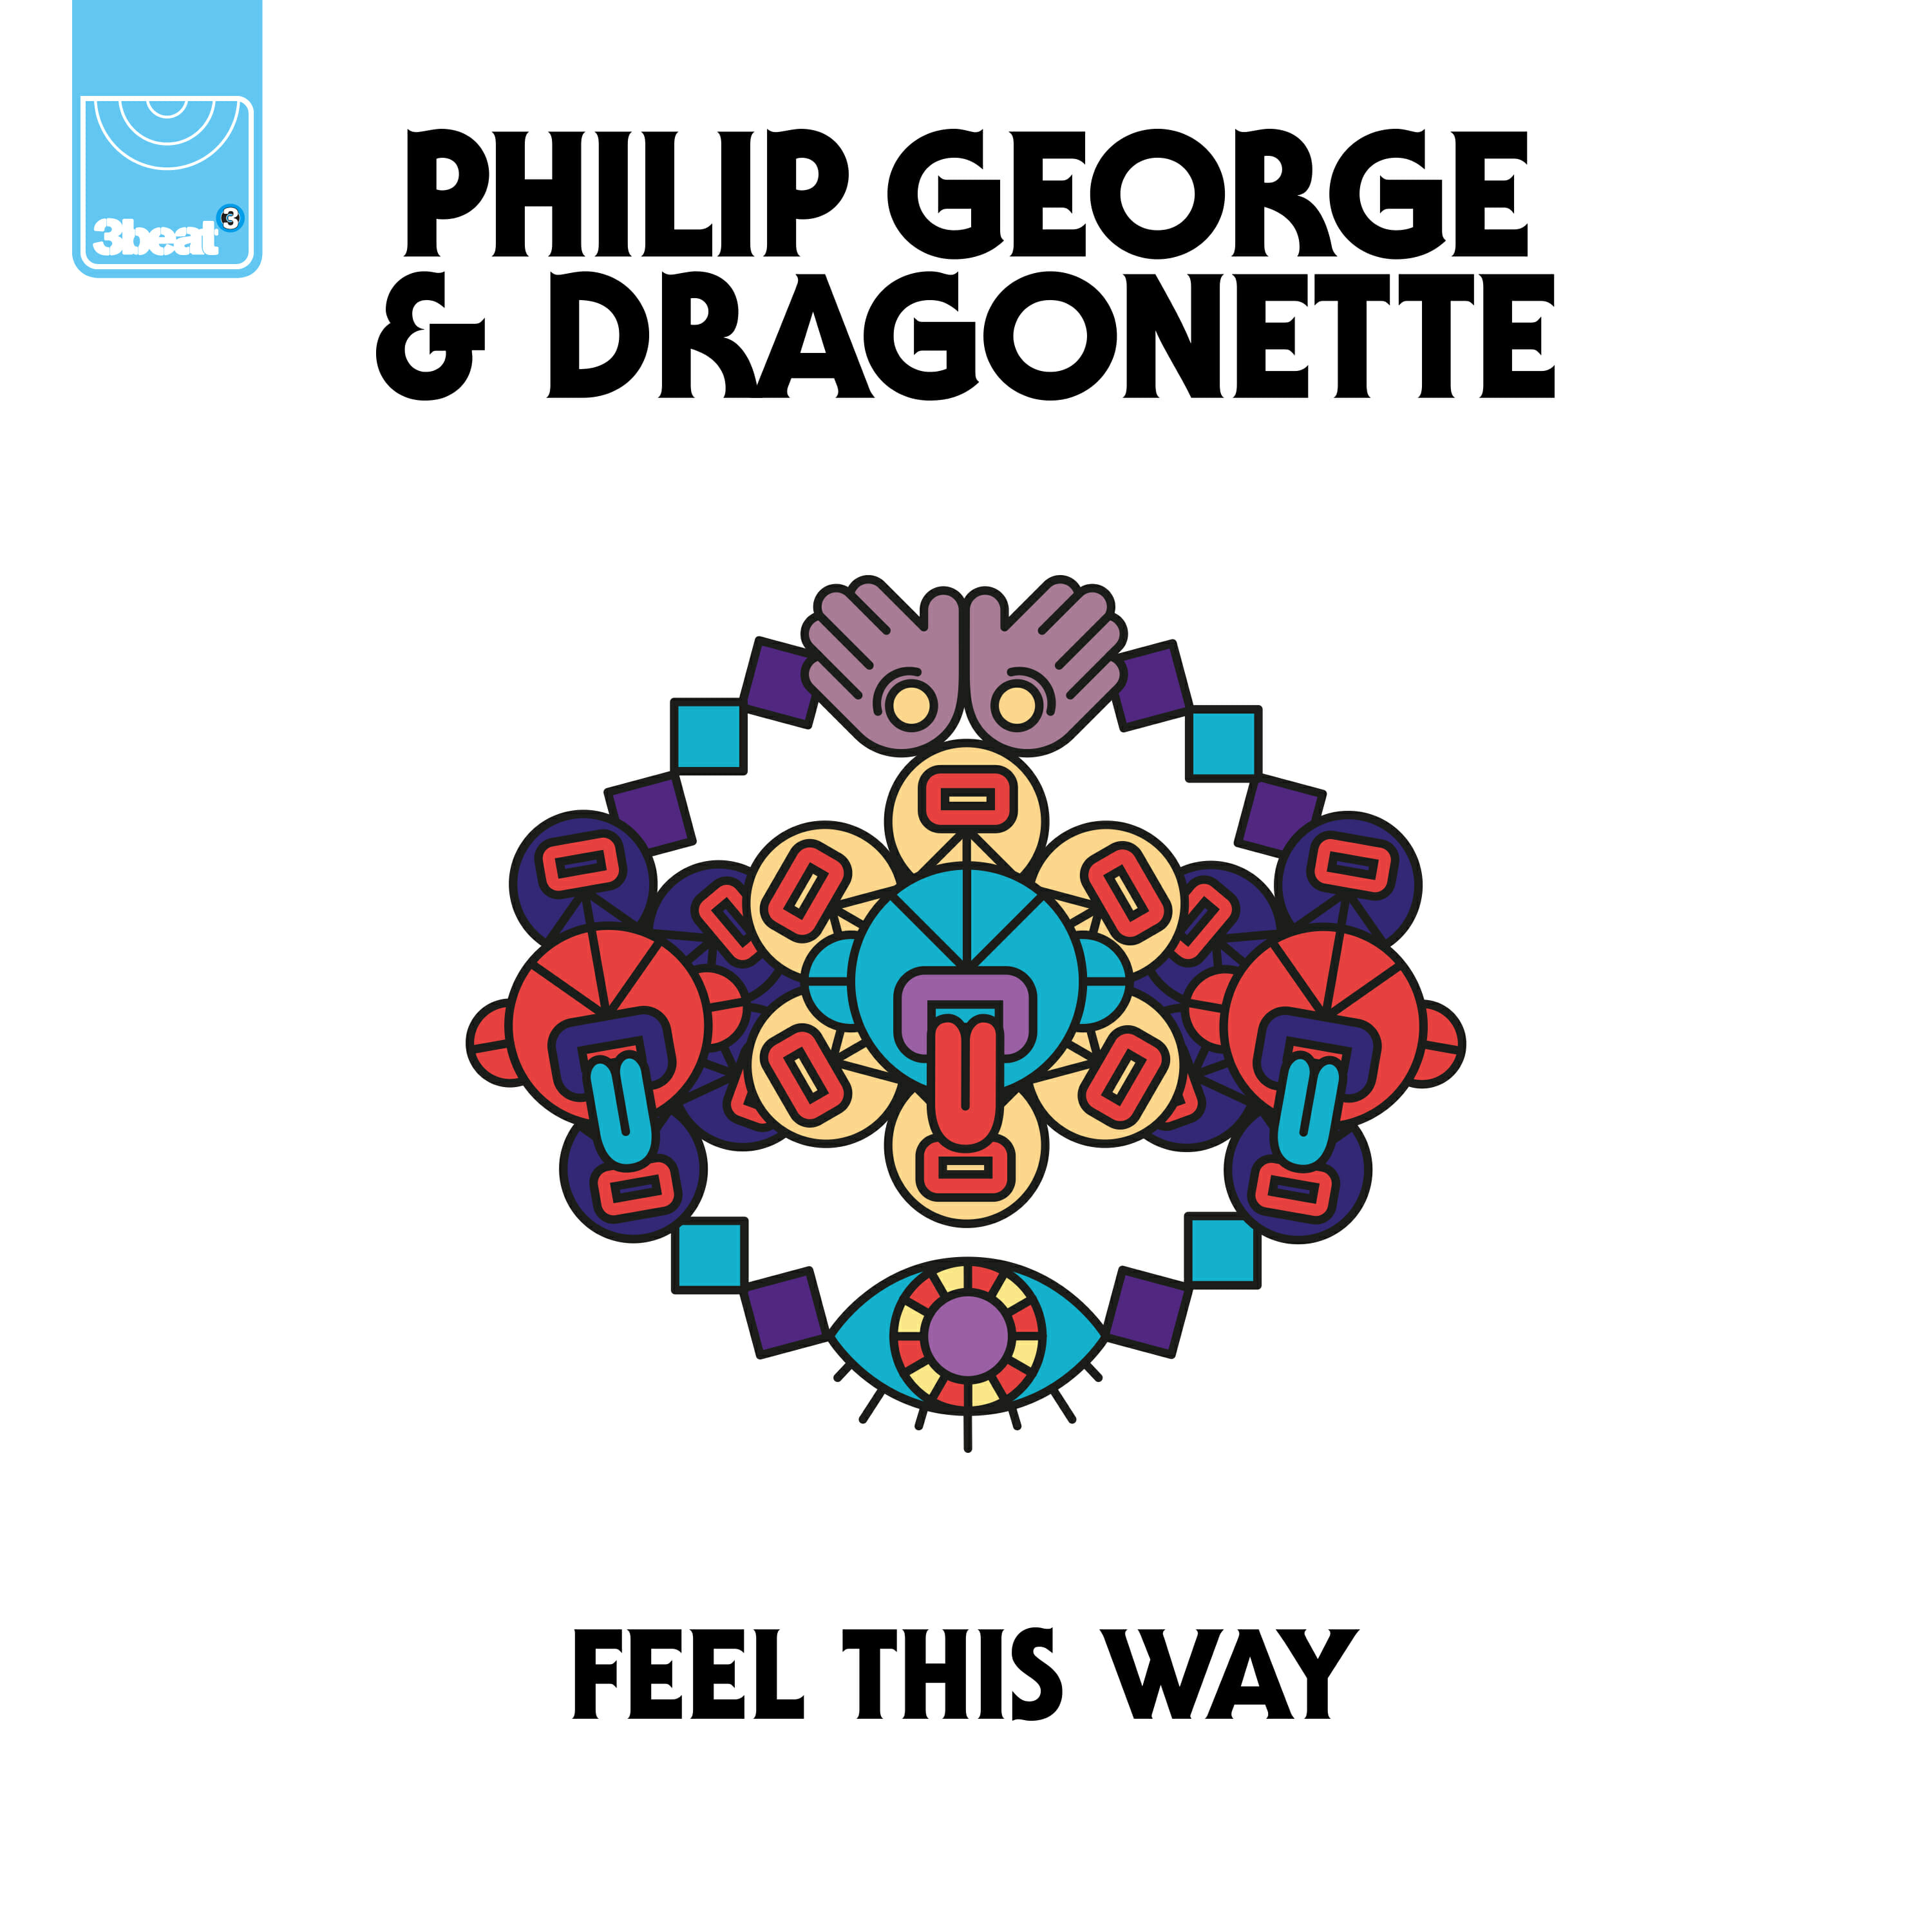 Philip George & Dragonette – Feel This Way (Original Mix)Dragonette Philip George Feel This Way